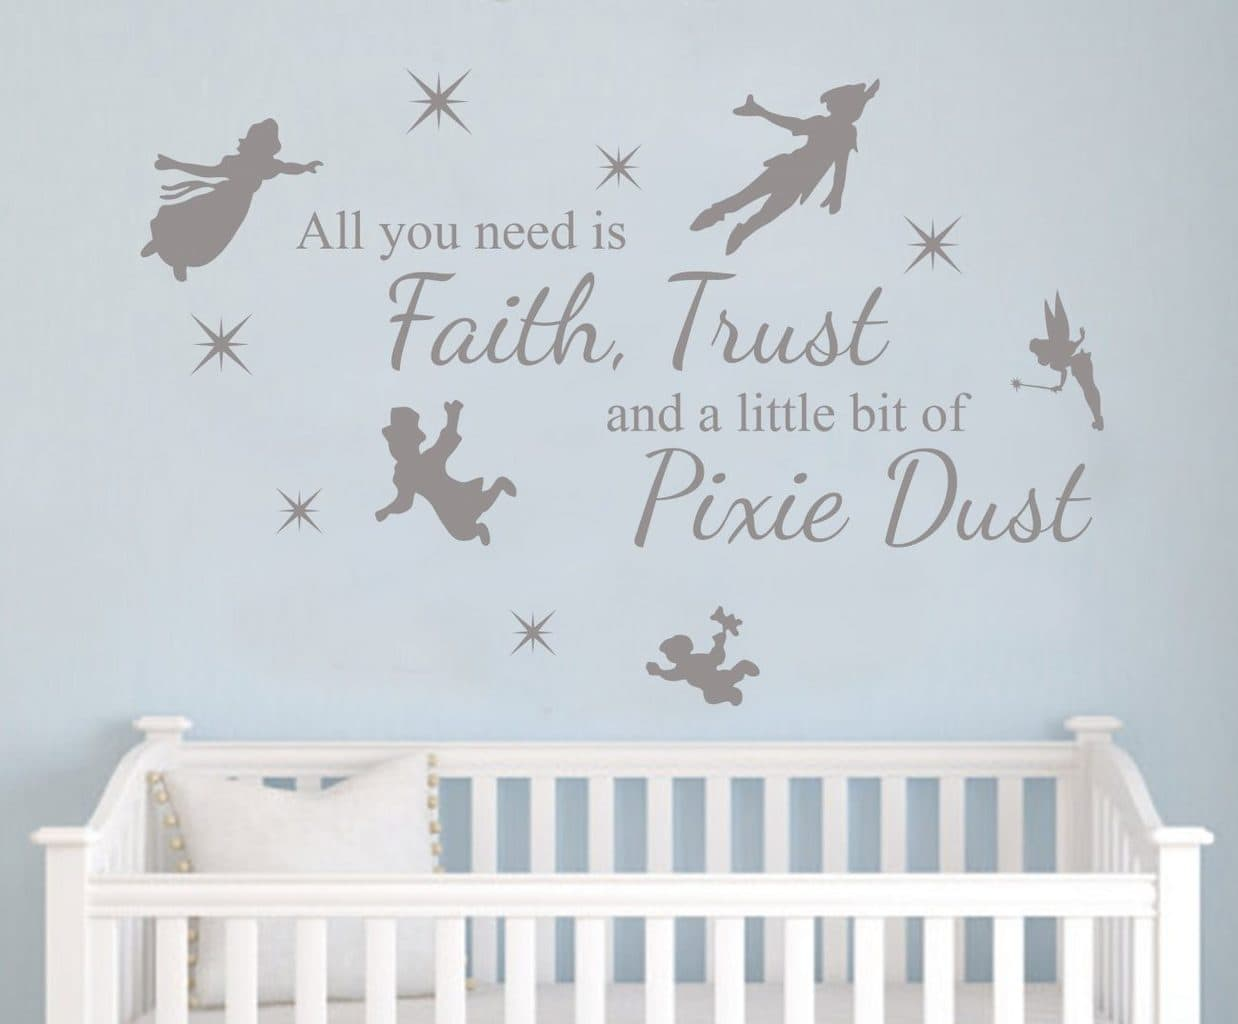 Peter Pan Pixie Dust Decal Wall Decal Sticker Wall Decals Wall